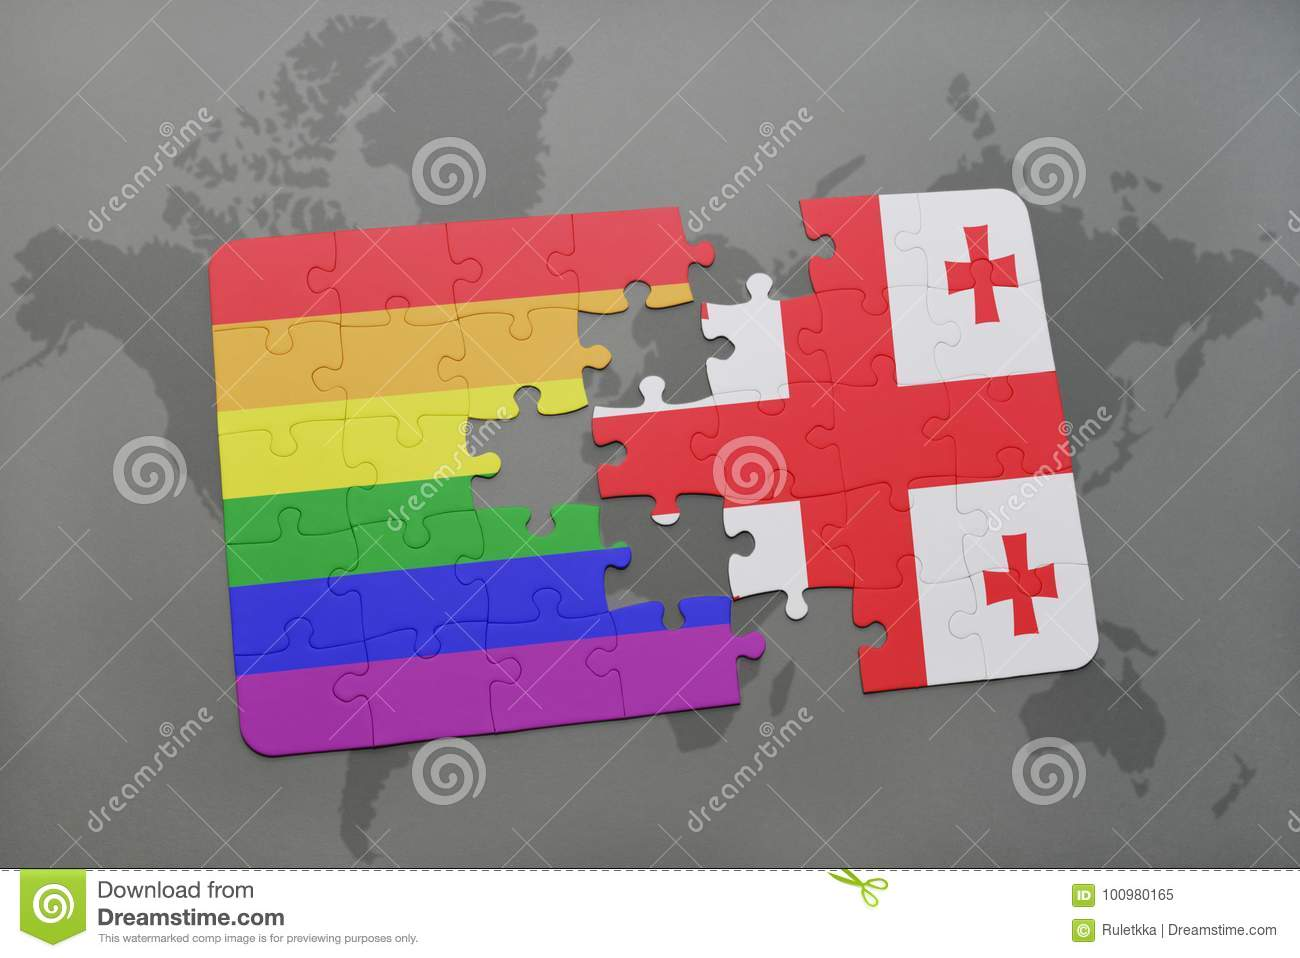 Puzzle With The National Flag Of Georgia And Gay Rainbow Flag On A